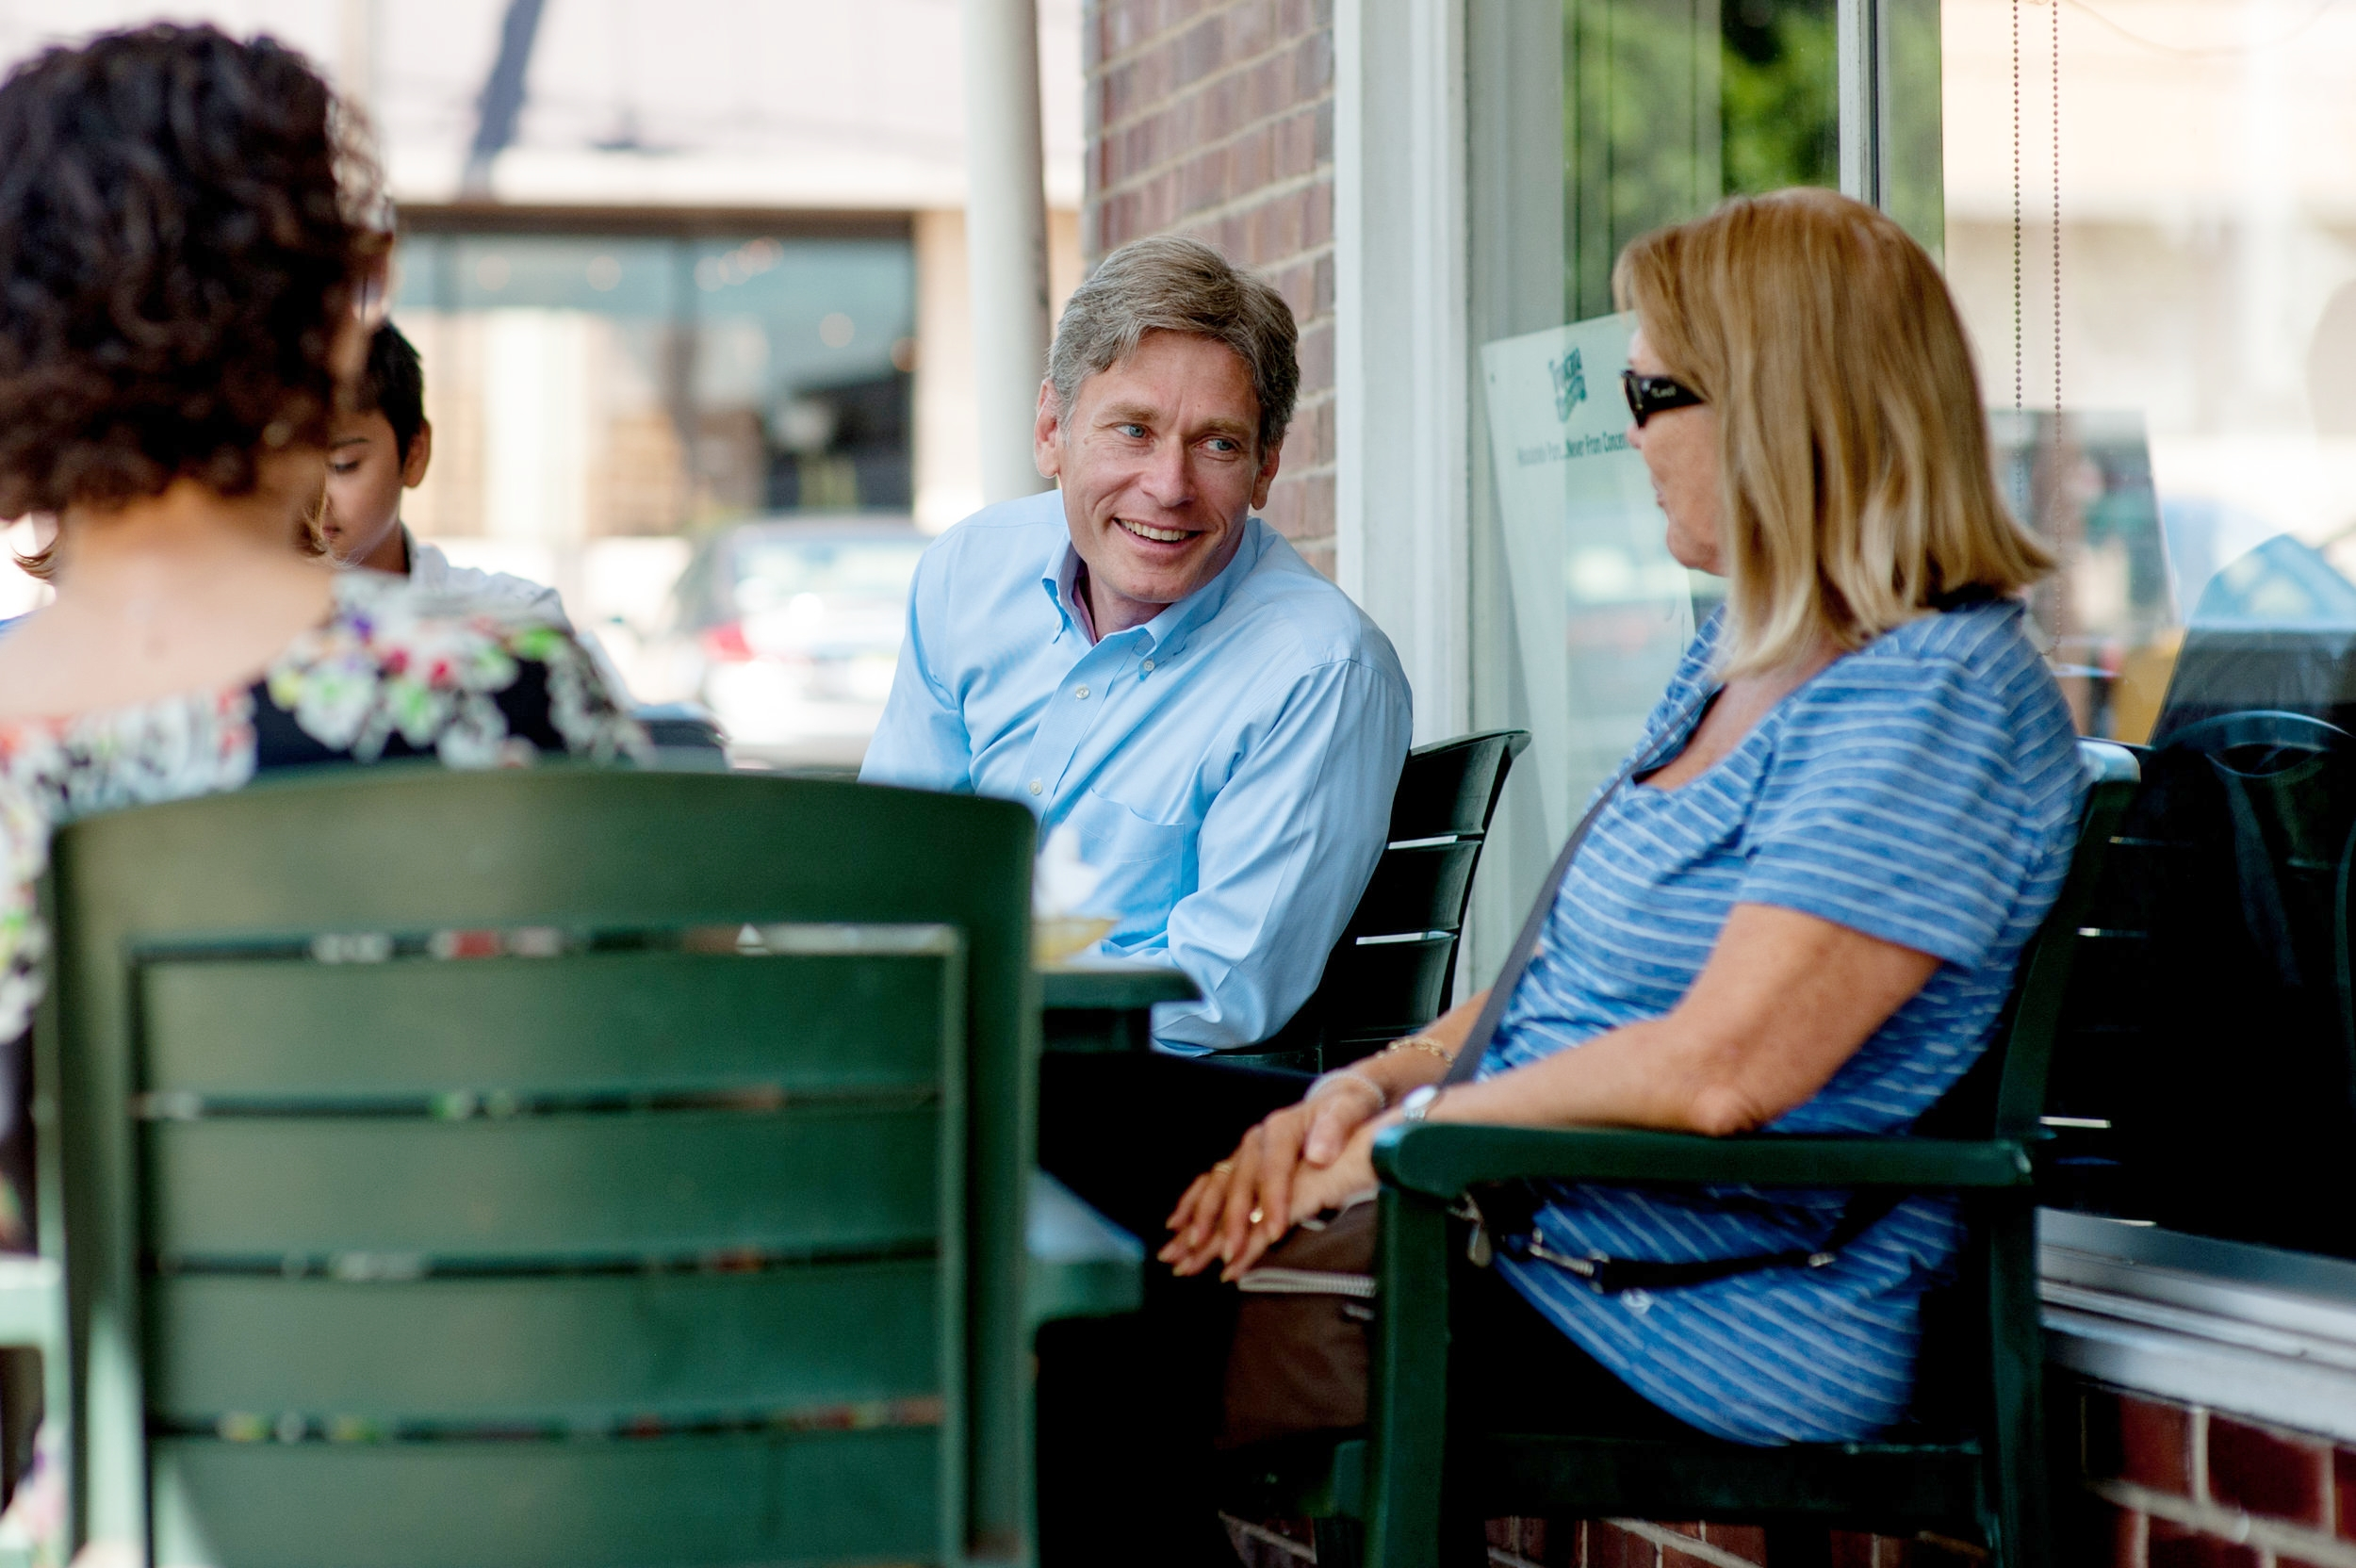 Tom Malinowski at Coffee Shop with NJ-7 Residents